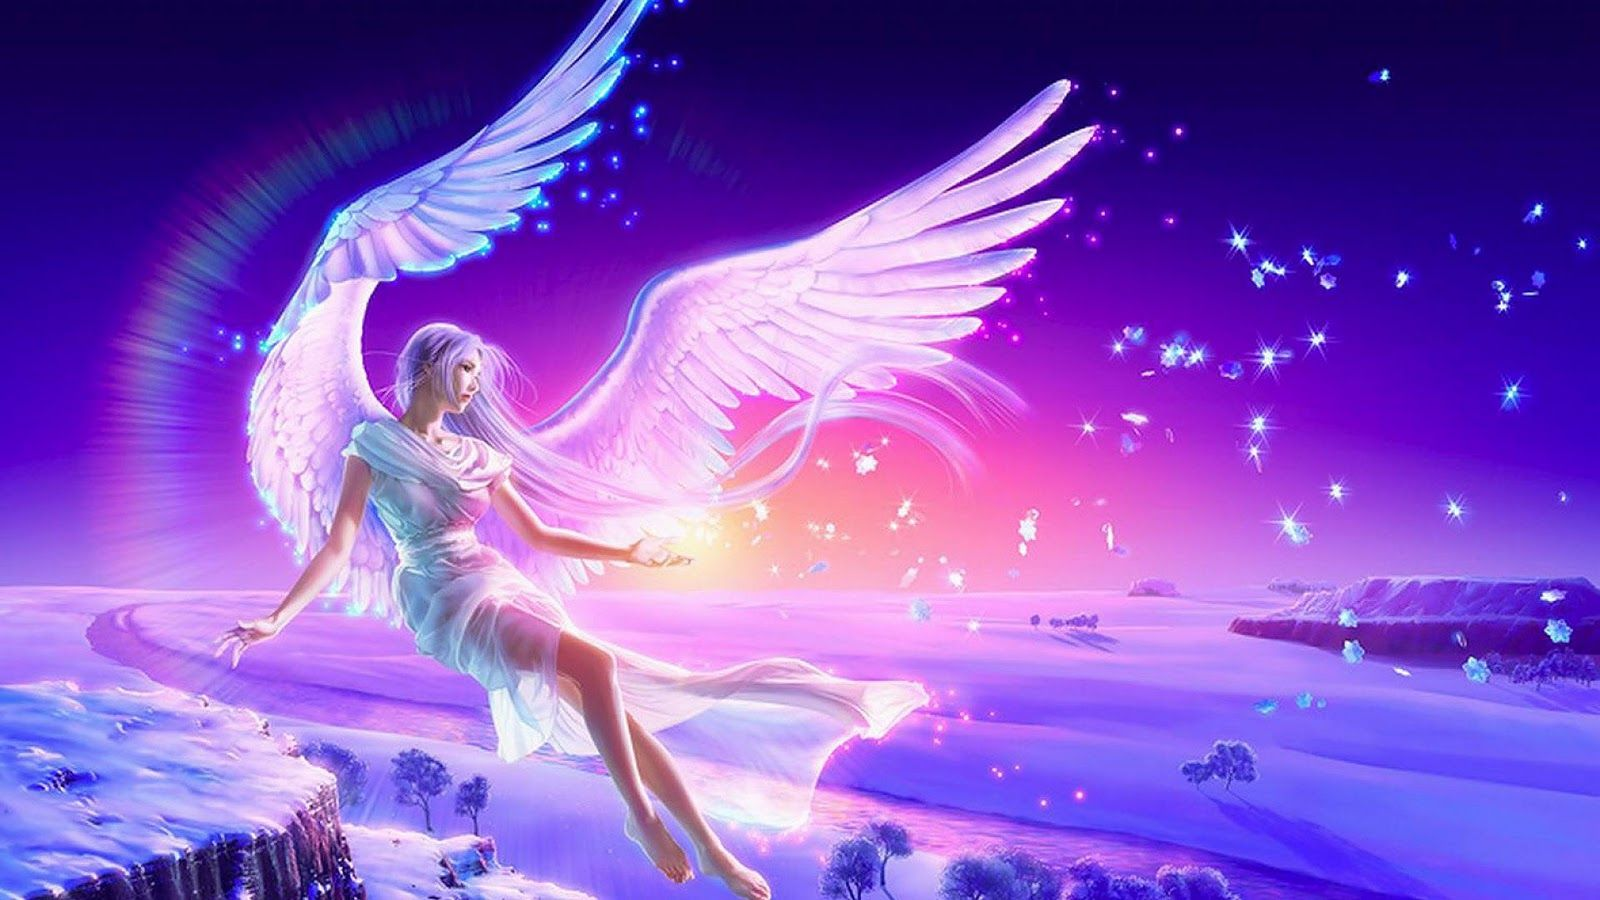 Free Wallpapers Of Angels Top Beautiful Angels Images HQ